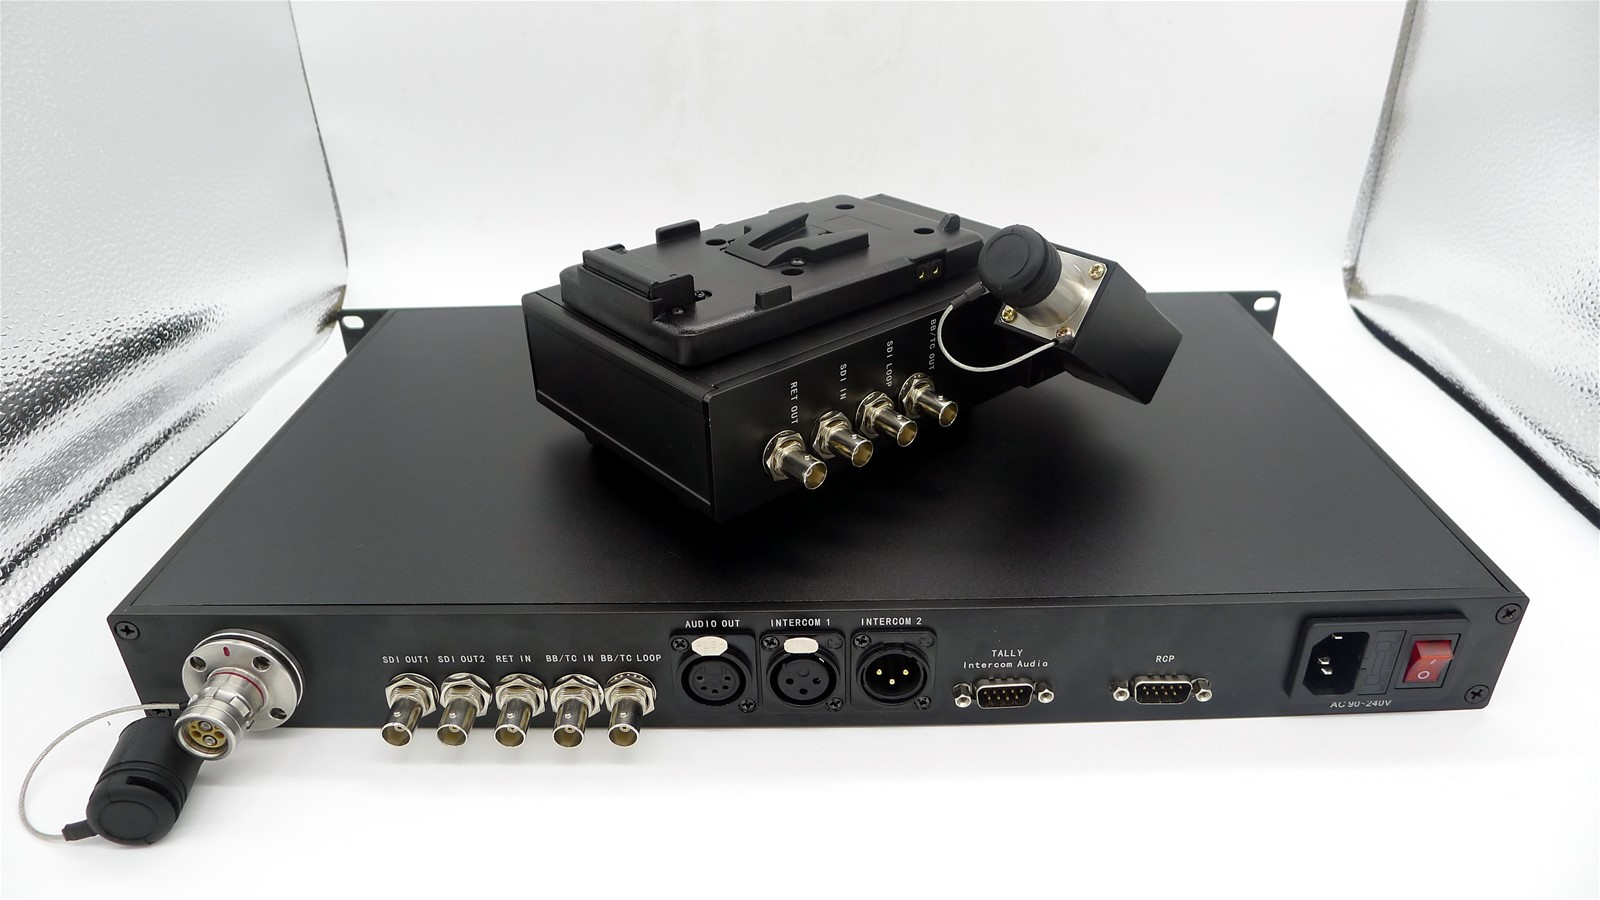 EFP package fiber camera system for JVC or Panasonic Sony camera SDIIntercomTallyRemote dataPGMGenlockLemo SMPTE